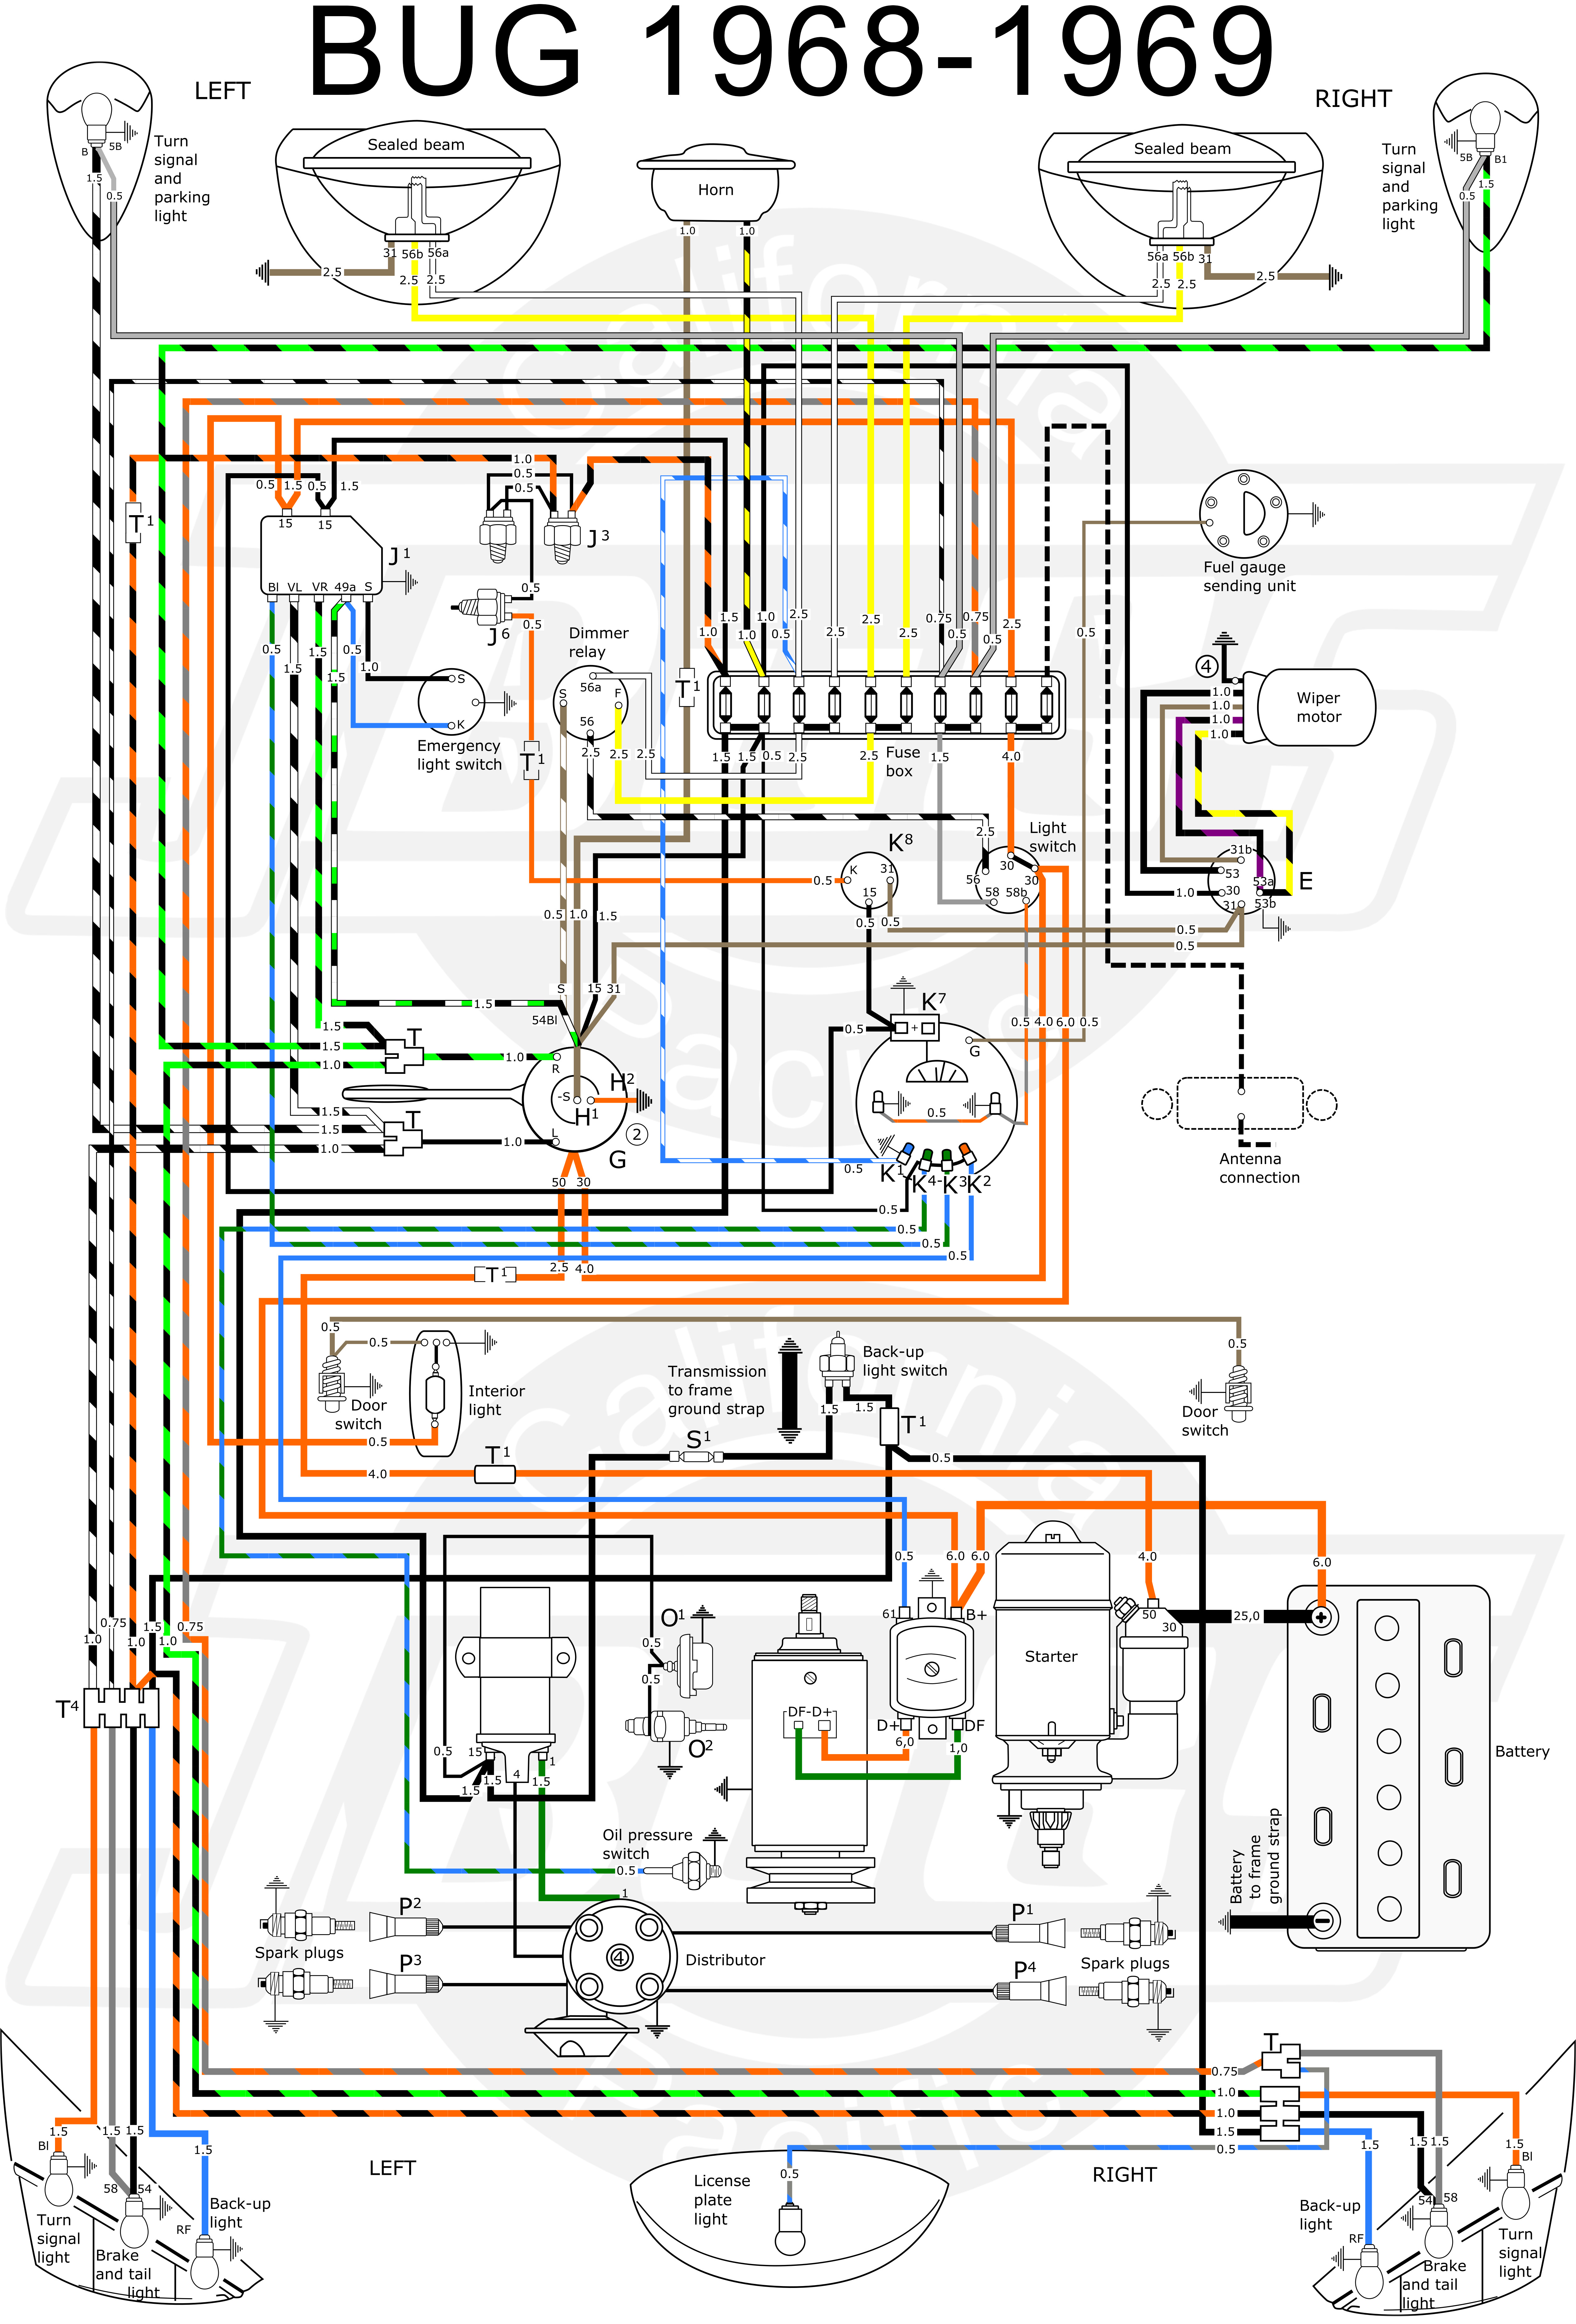 VW Bug 1968 69 Wiring Diagram jbug wiring harness 1970 vw beetle wiring harness \u2022 wiring vw bug painless wiring harness at mifinder.co